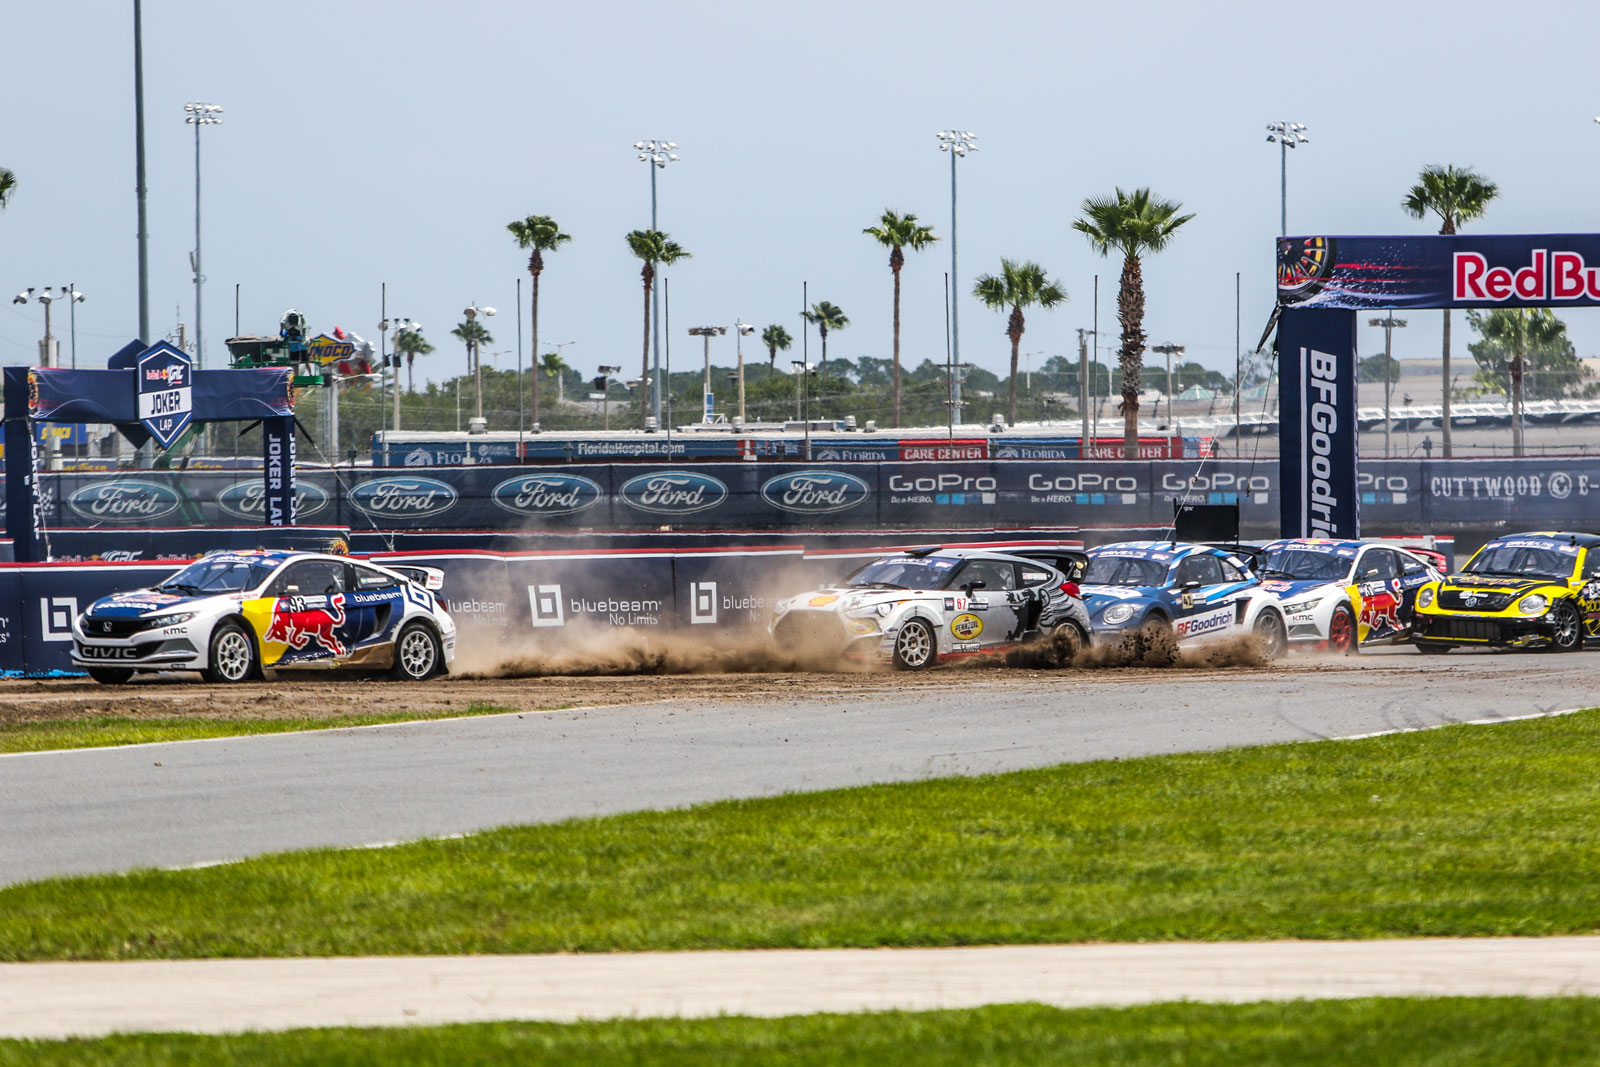 Cars tearing up the Red Bull Global Rallycross track at Daytona International Speedway with the Red Bull Bluebeam Honda Civic leading the pack.